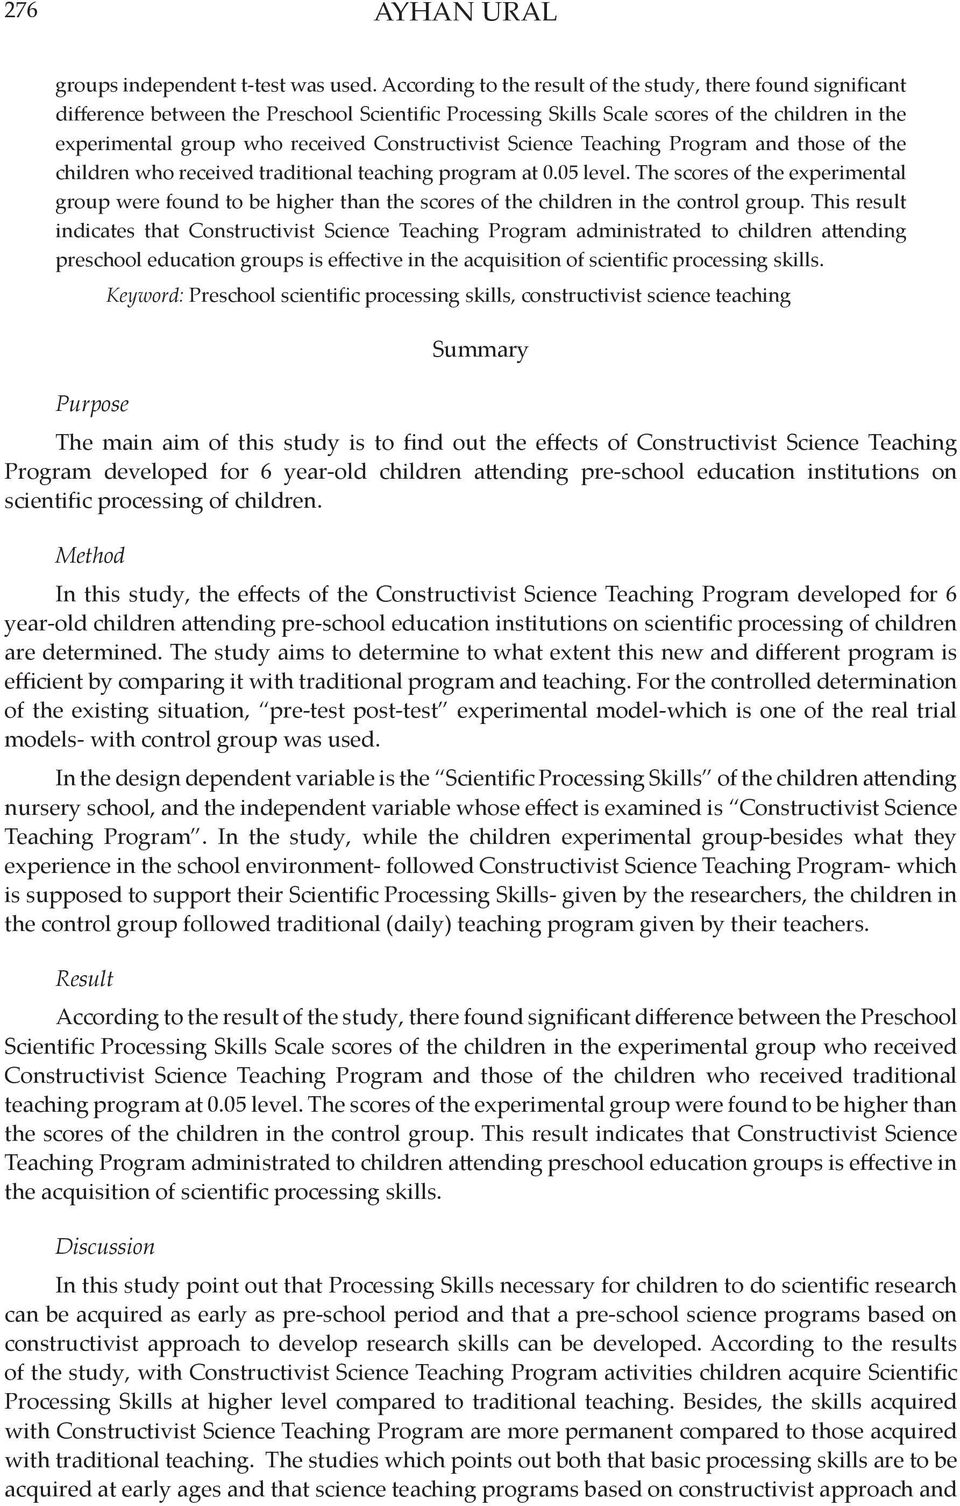 Constructivist Science Teaching Program and those of the children who received traditional teaching program at 0.05 level.